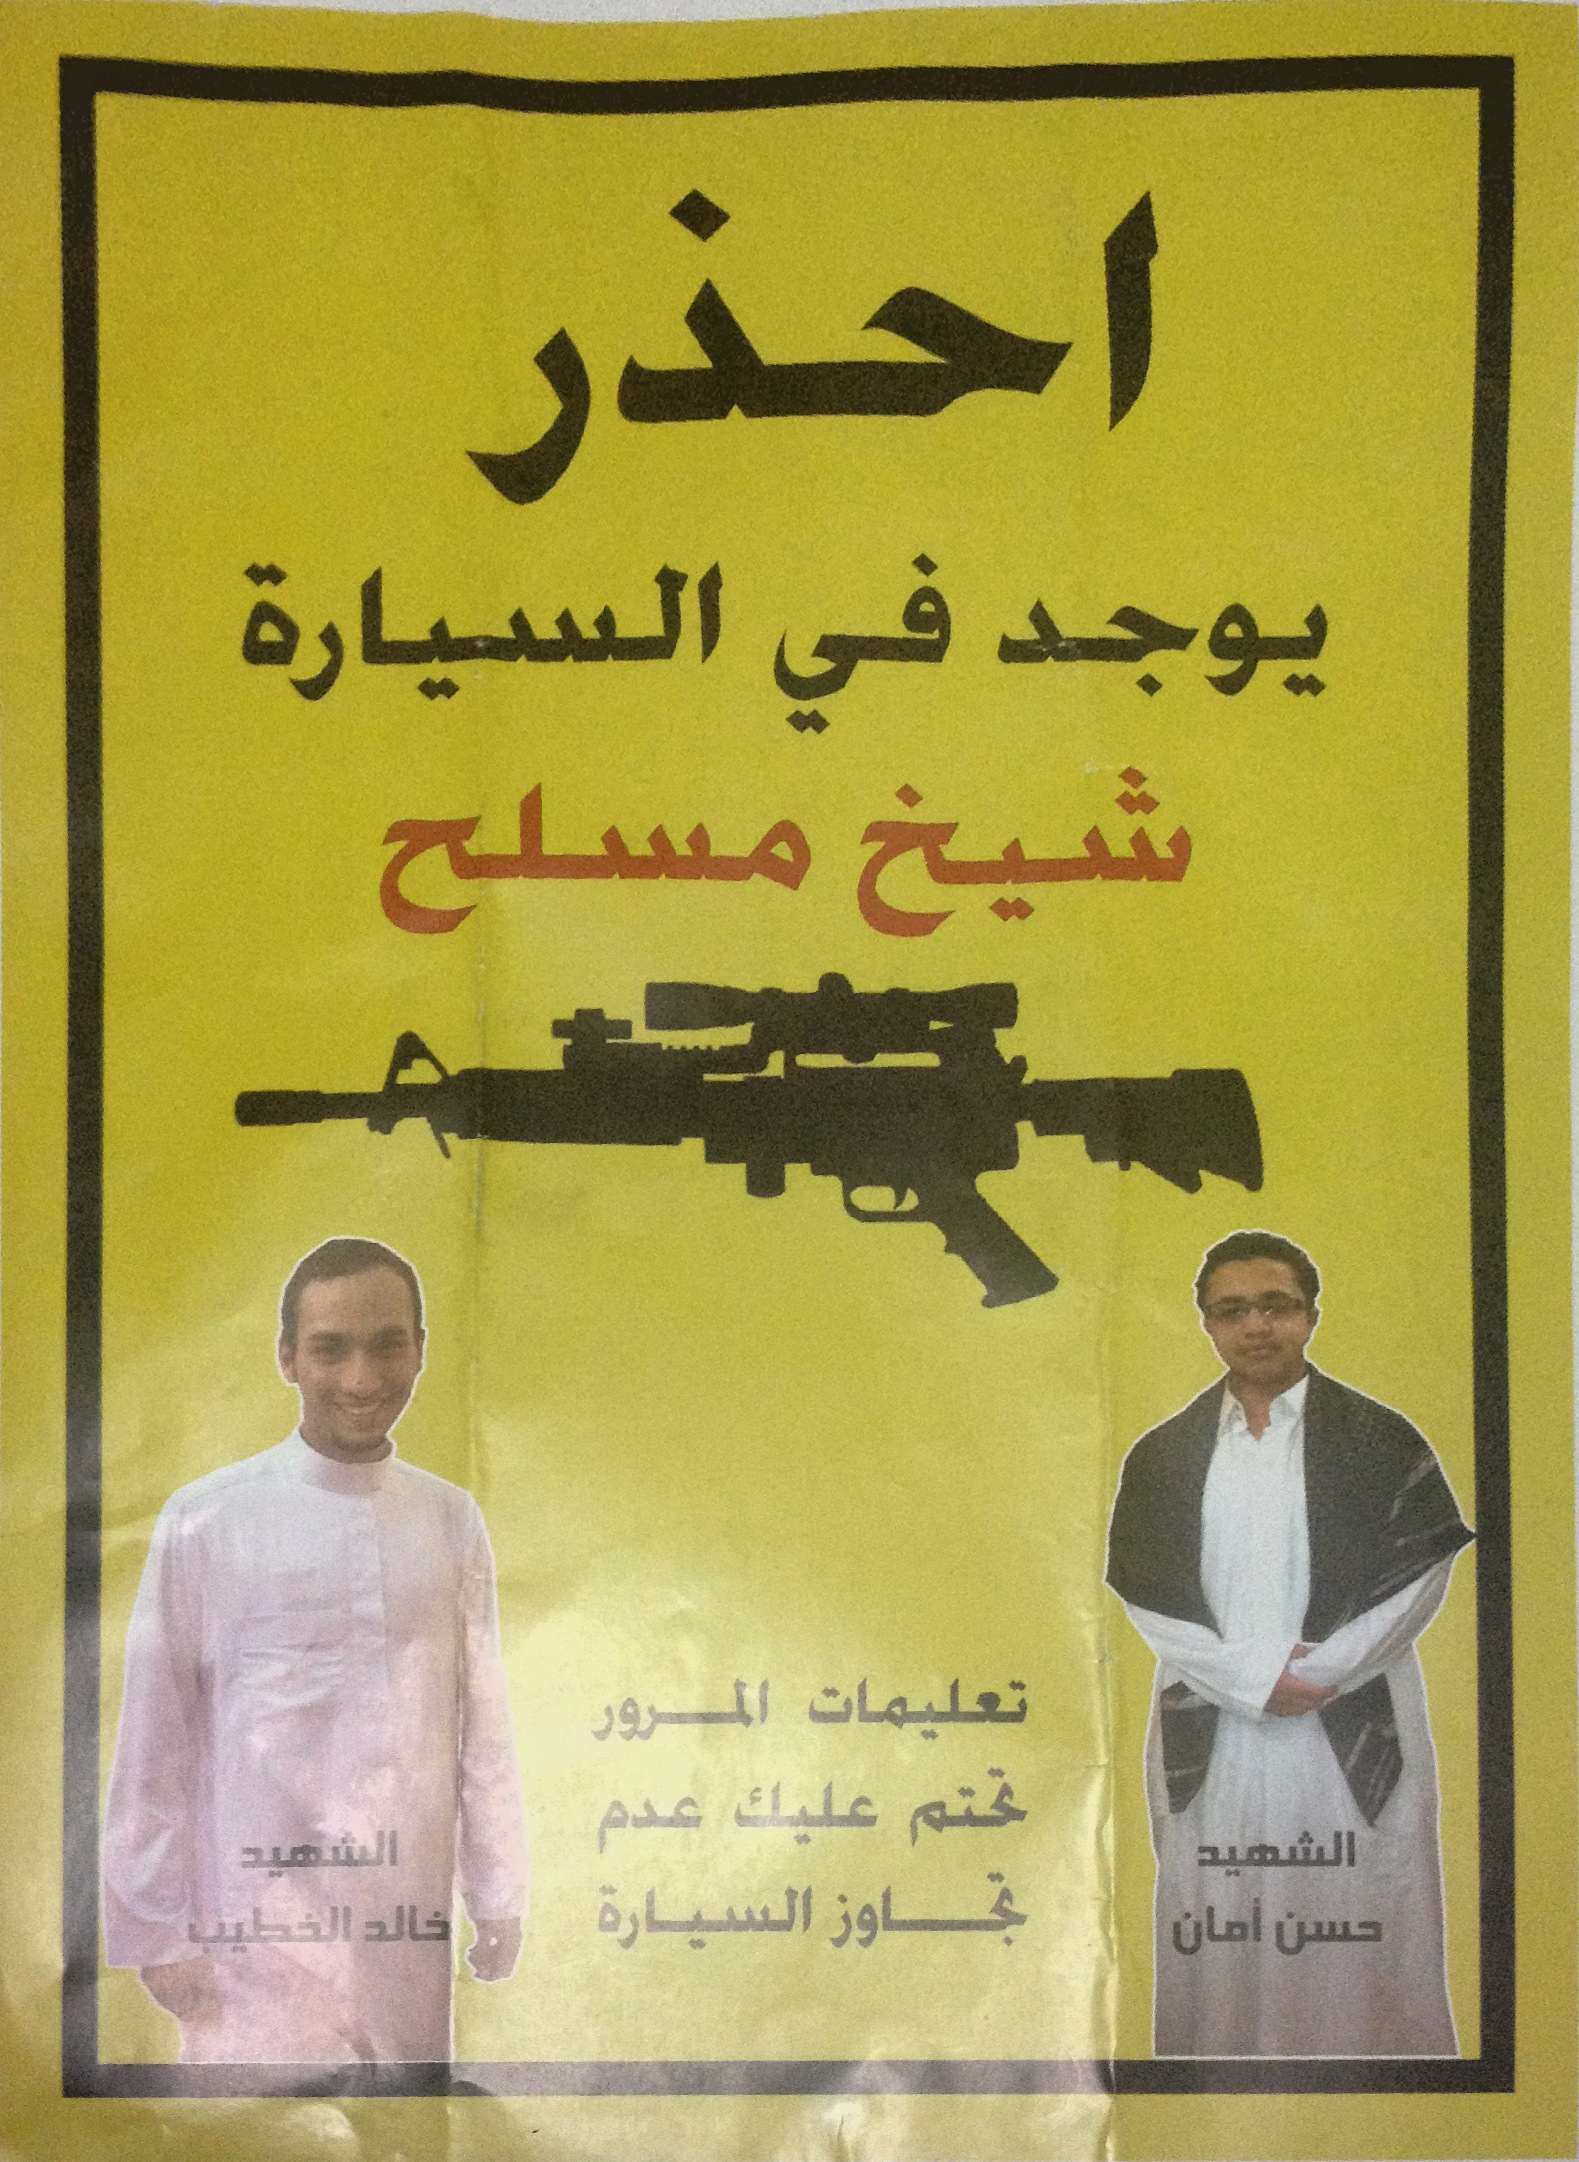 """The poster featuring Al-khateeb (left) and Aman (right) reads:  """"Caution. There is an Armed Sheikh in the Car. Instructions necessitate you do not overtake the car"""""""